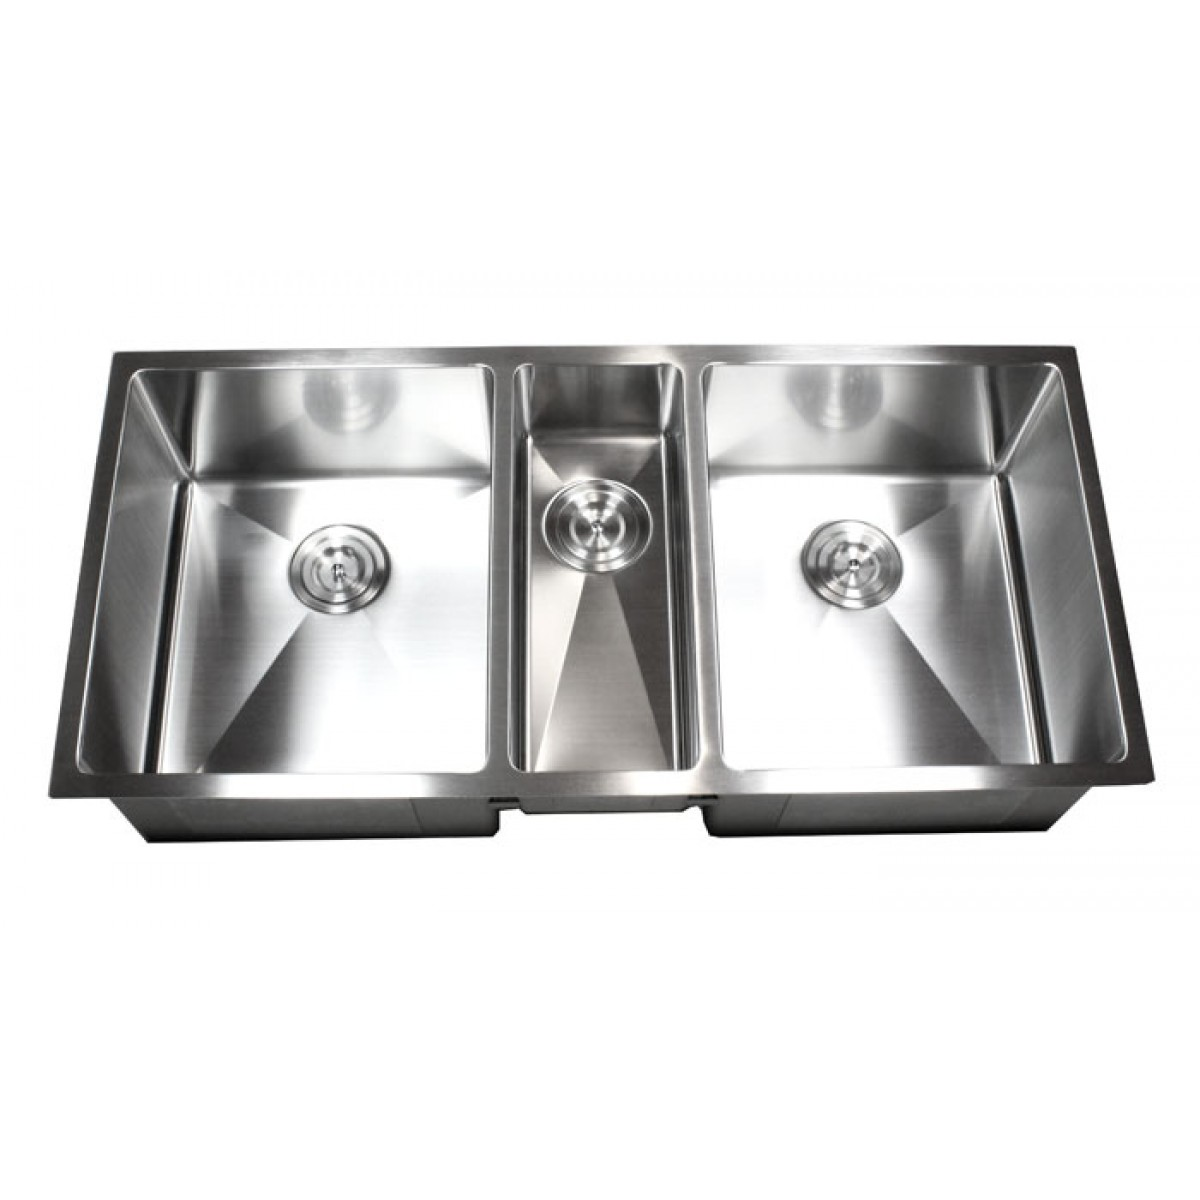 42 inch stainless steel undermount triple bowl kitchen sink 15mm